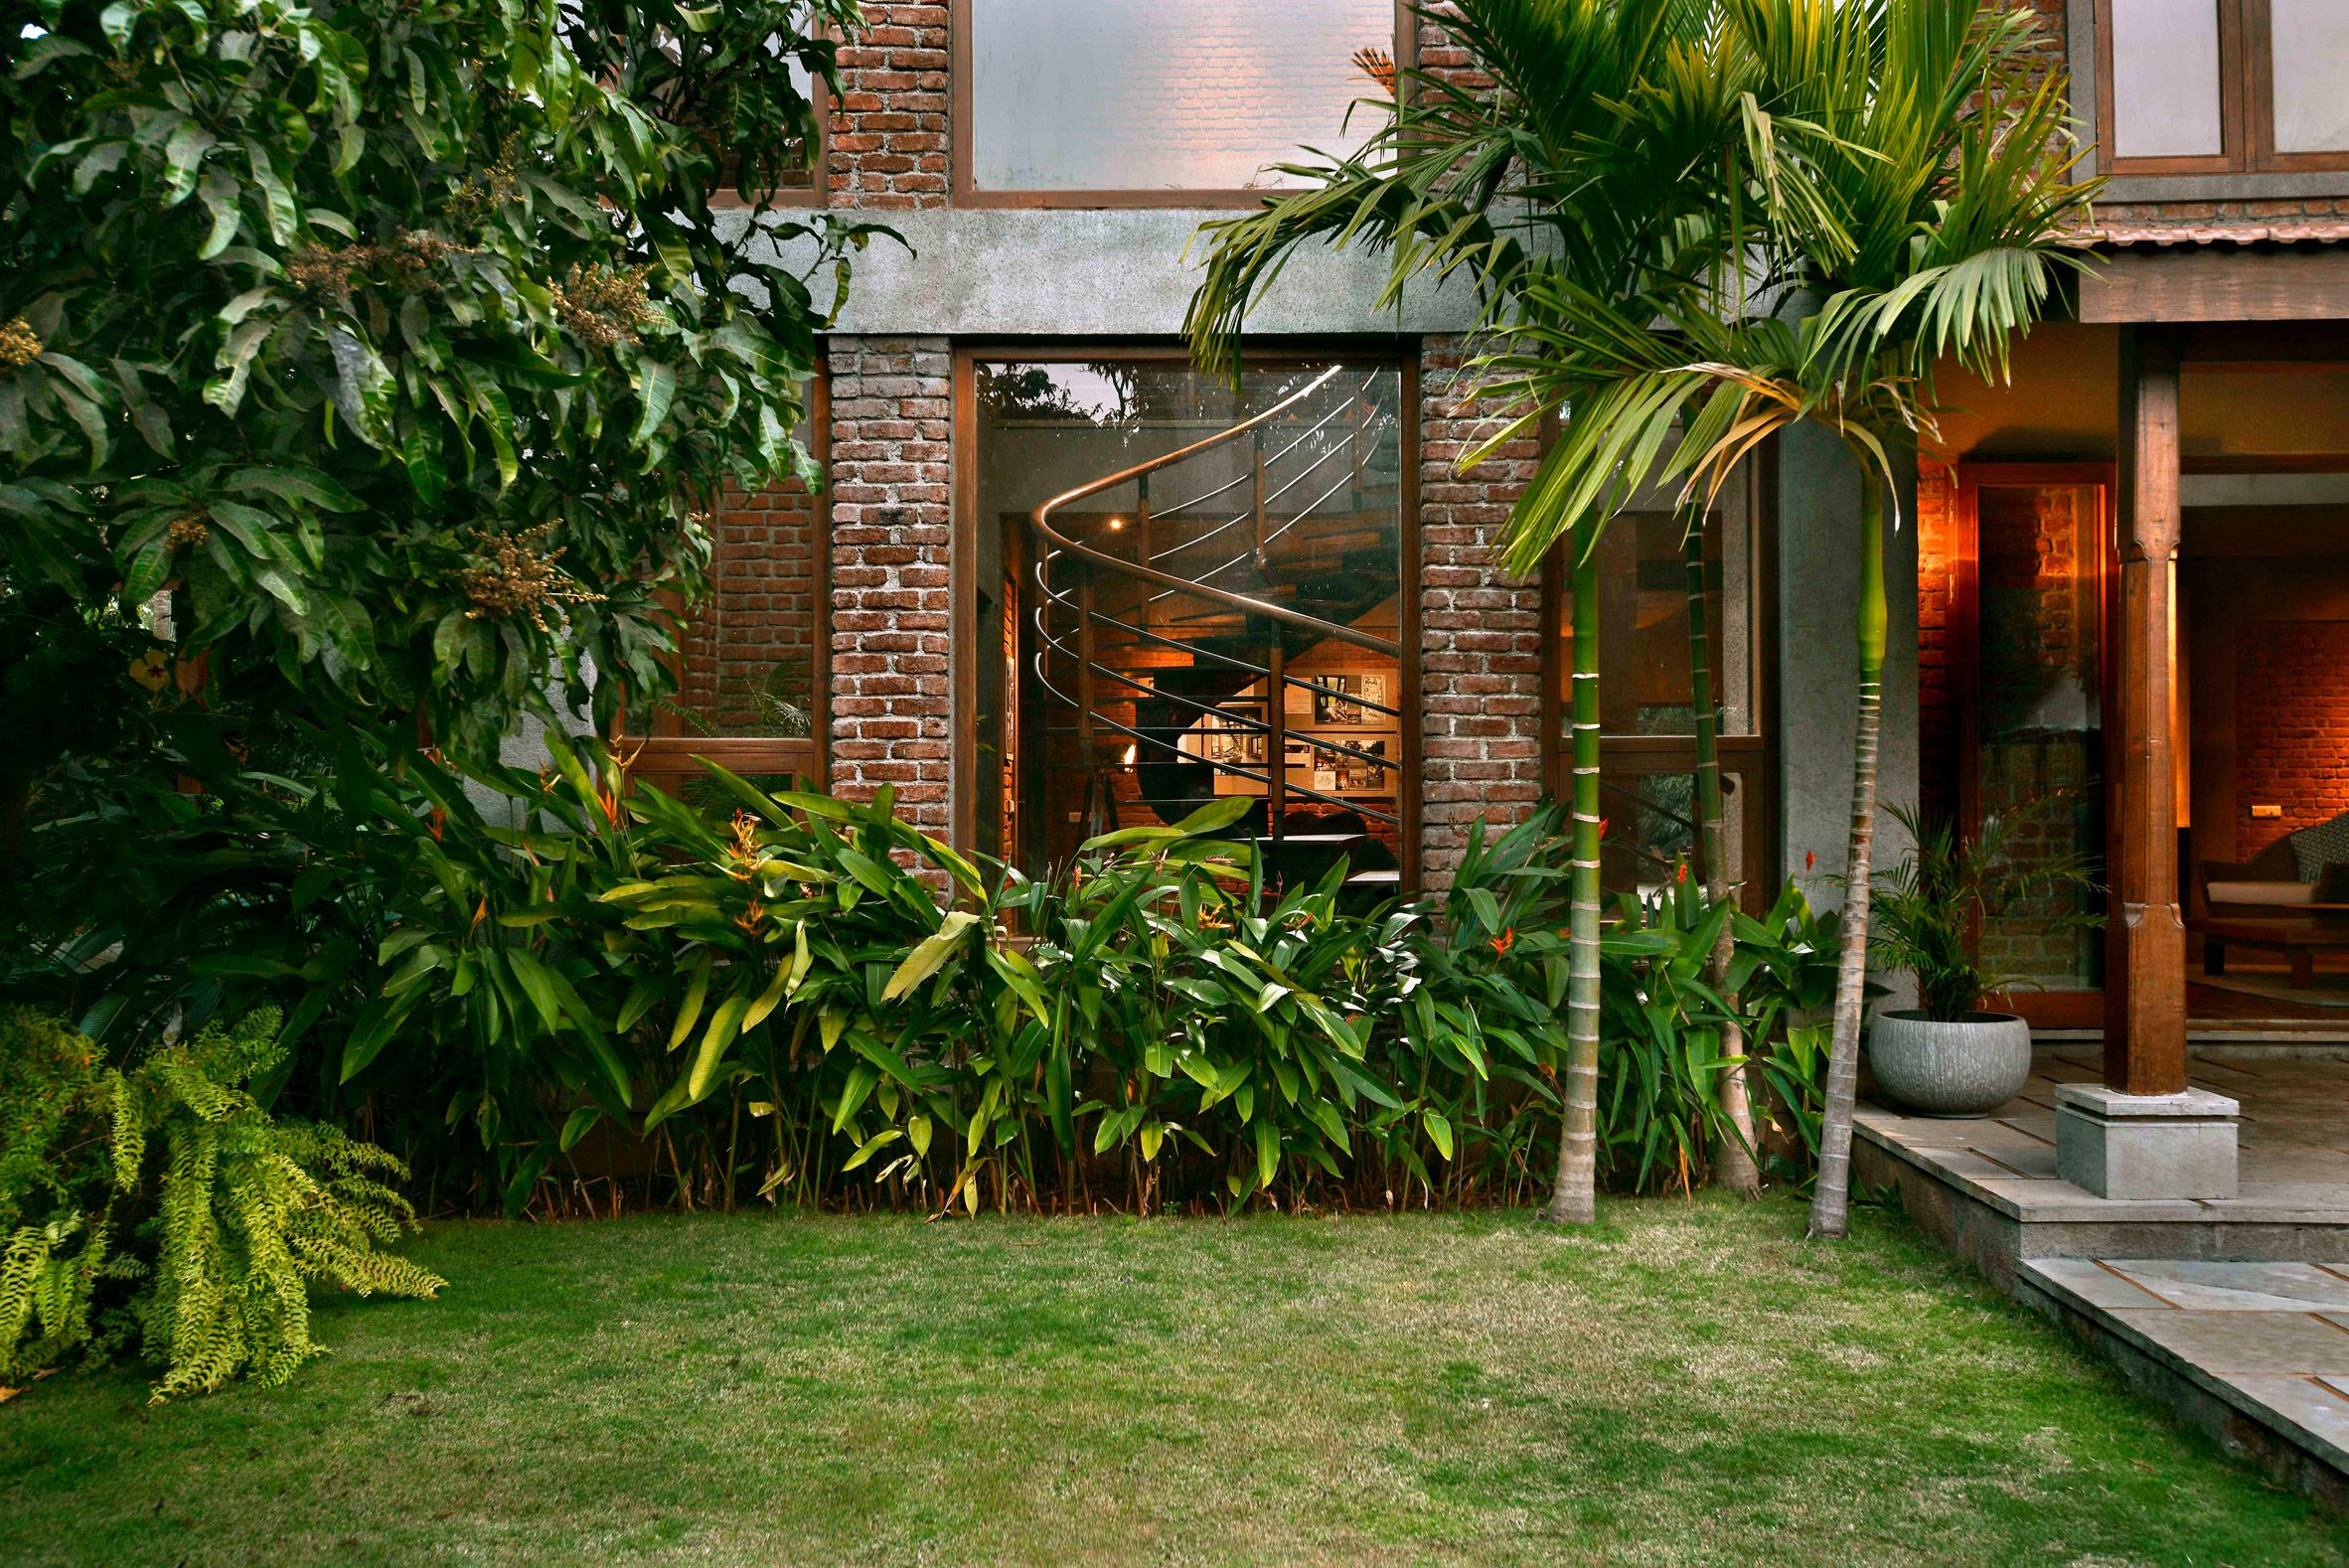 Brick-lined interiors open up to garden filled with fruit